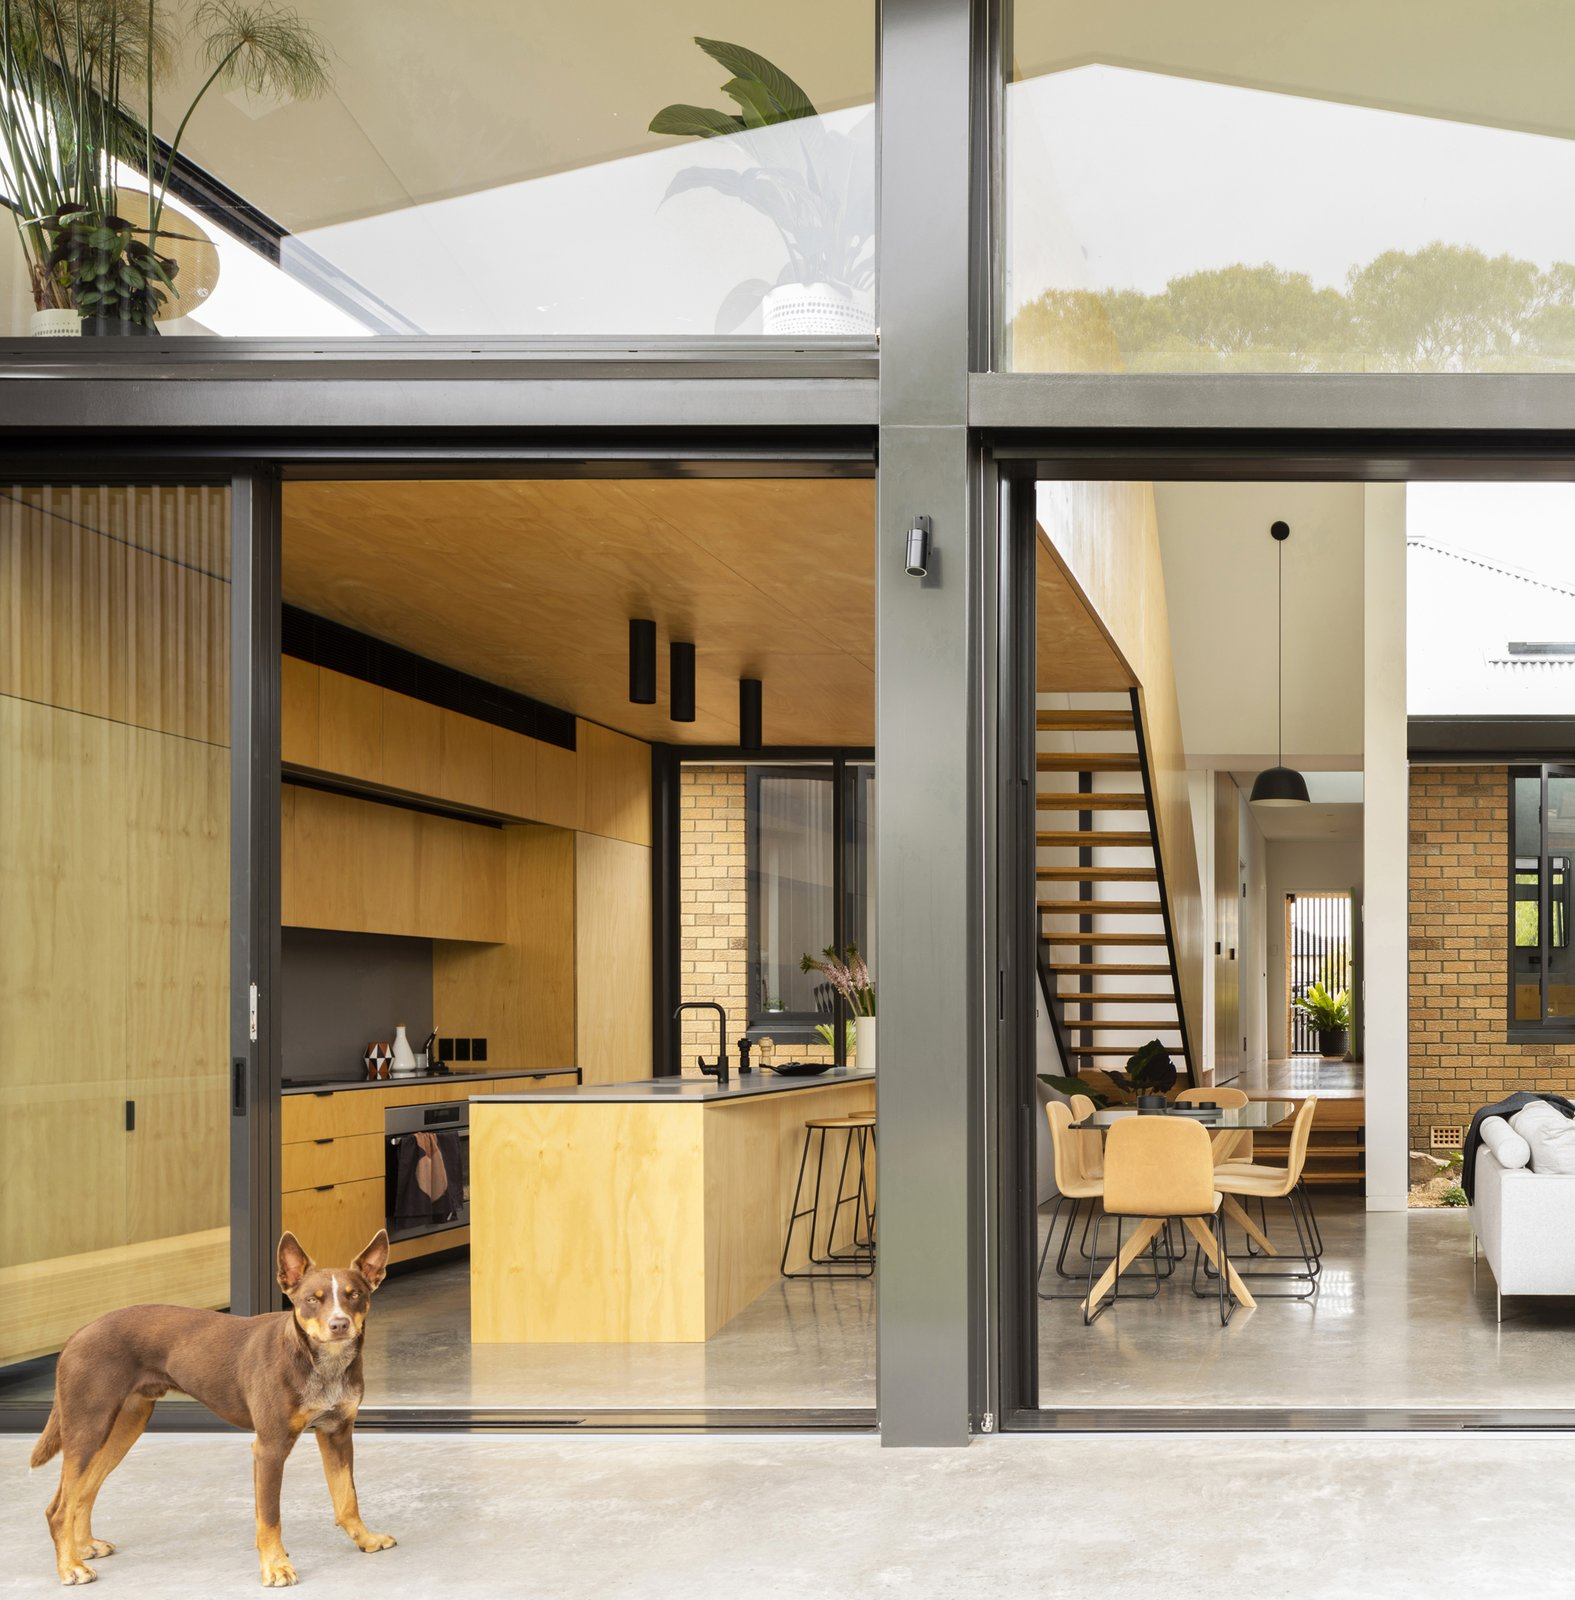 Windows, Metal, Picture, and Sliding A binary play of considered honey and gray tones strongly reference the exterior yellow brick and gray metal of the two distinct structures.  Best Windows Sliding Metal Photos from Binary House